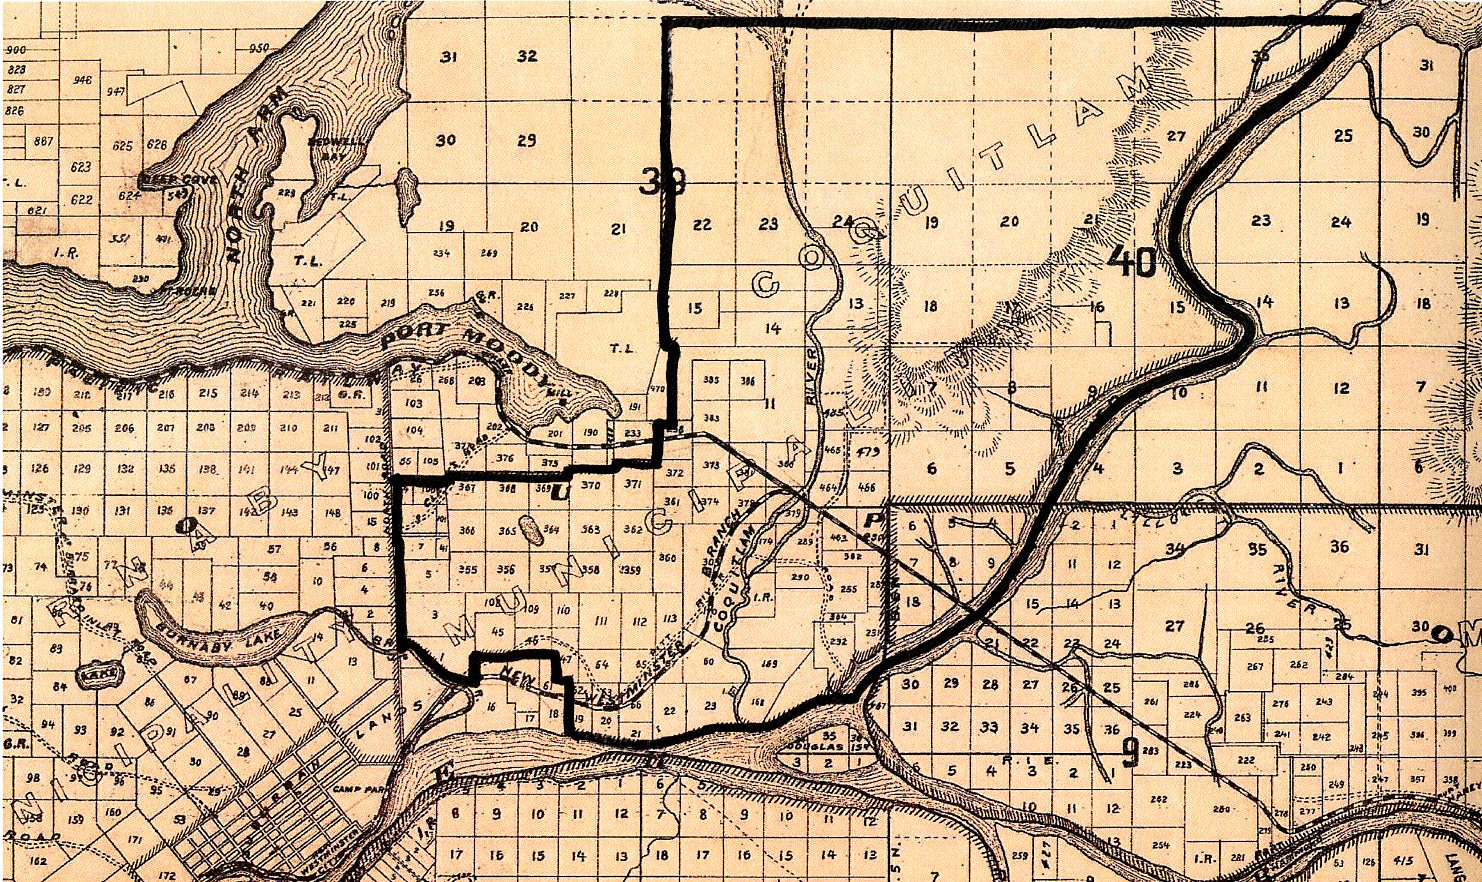 Coquitlam's 1894 Boundaries Drawn on a Map of New Westminster District from 1892 (JPG) Opens in new window